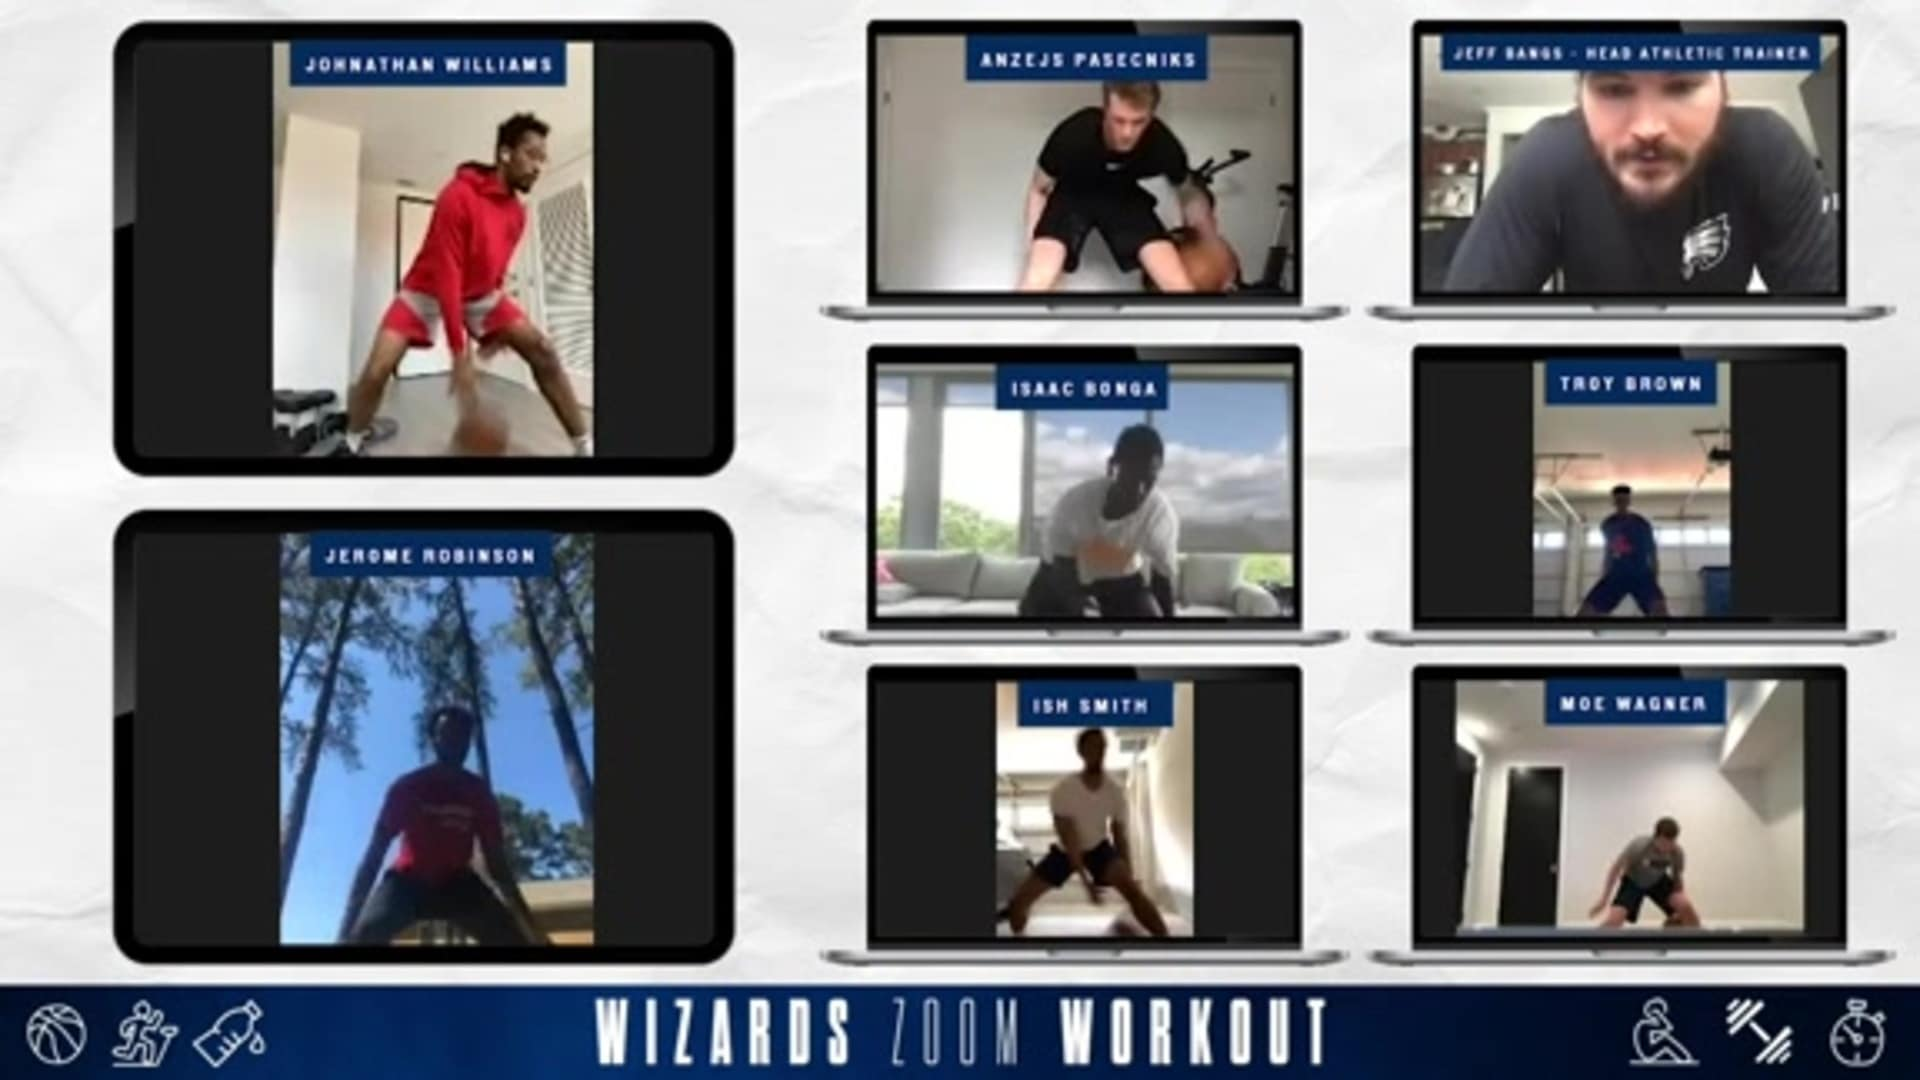 Wizards Zoom Workouts: Ball-Handling Competition - 5/15/20